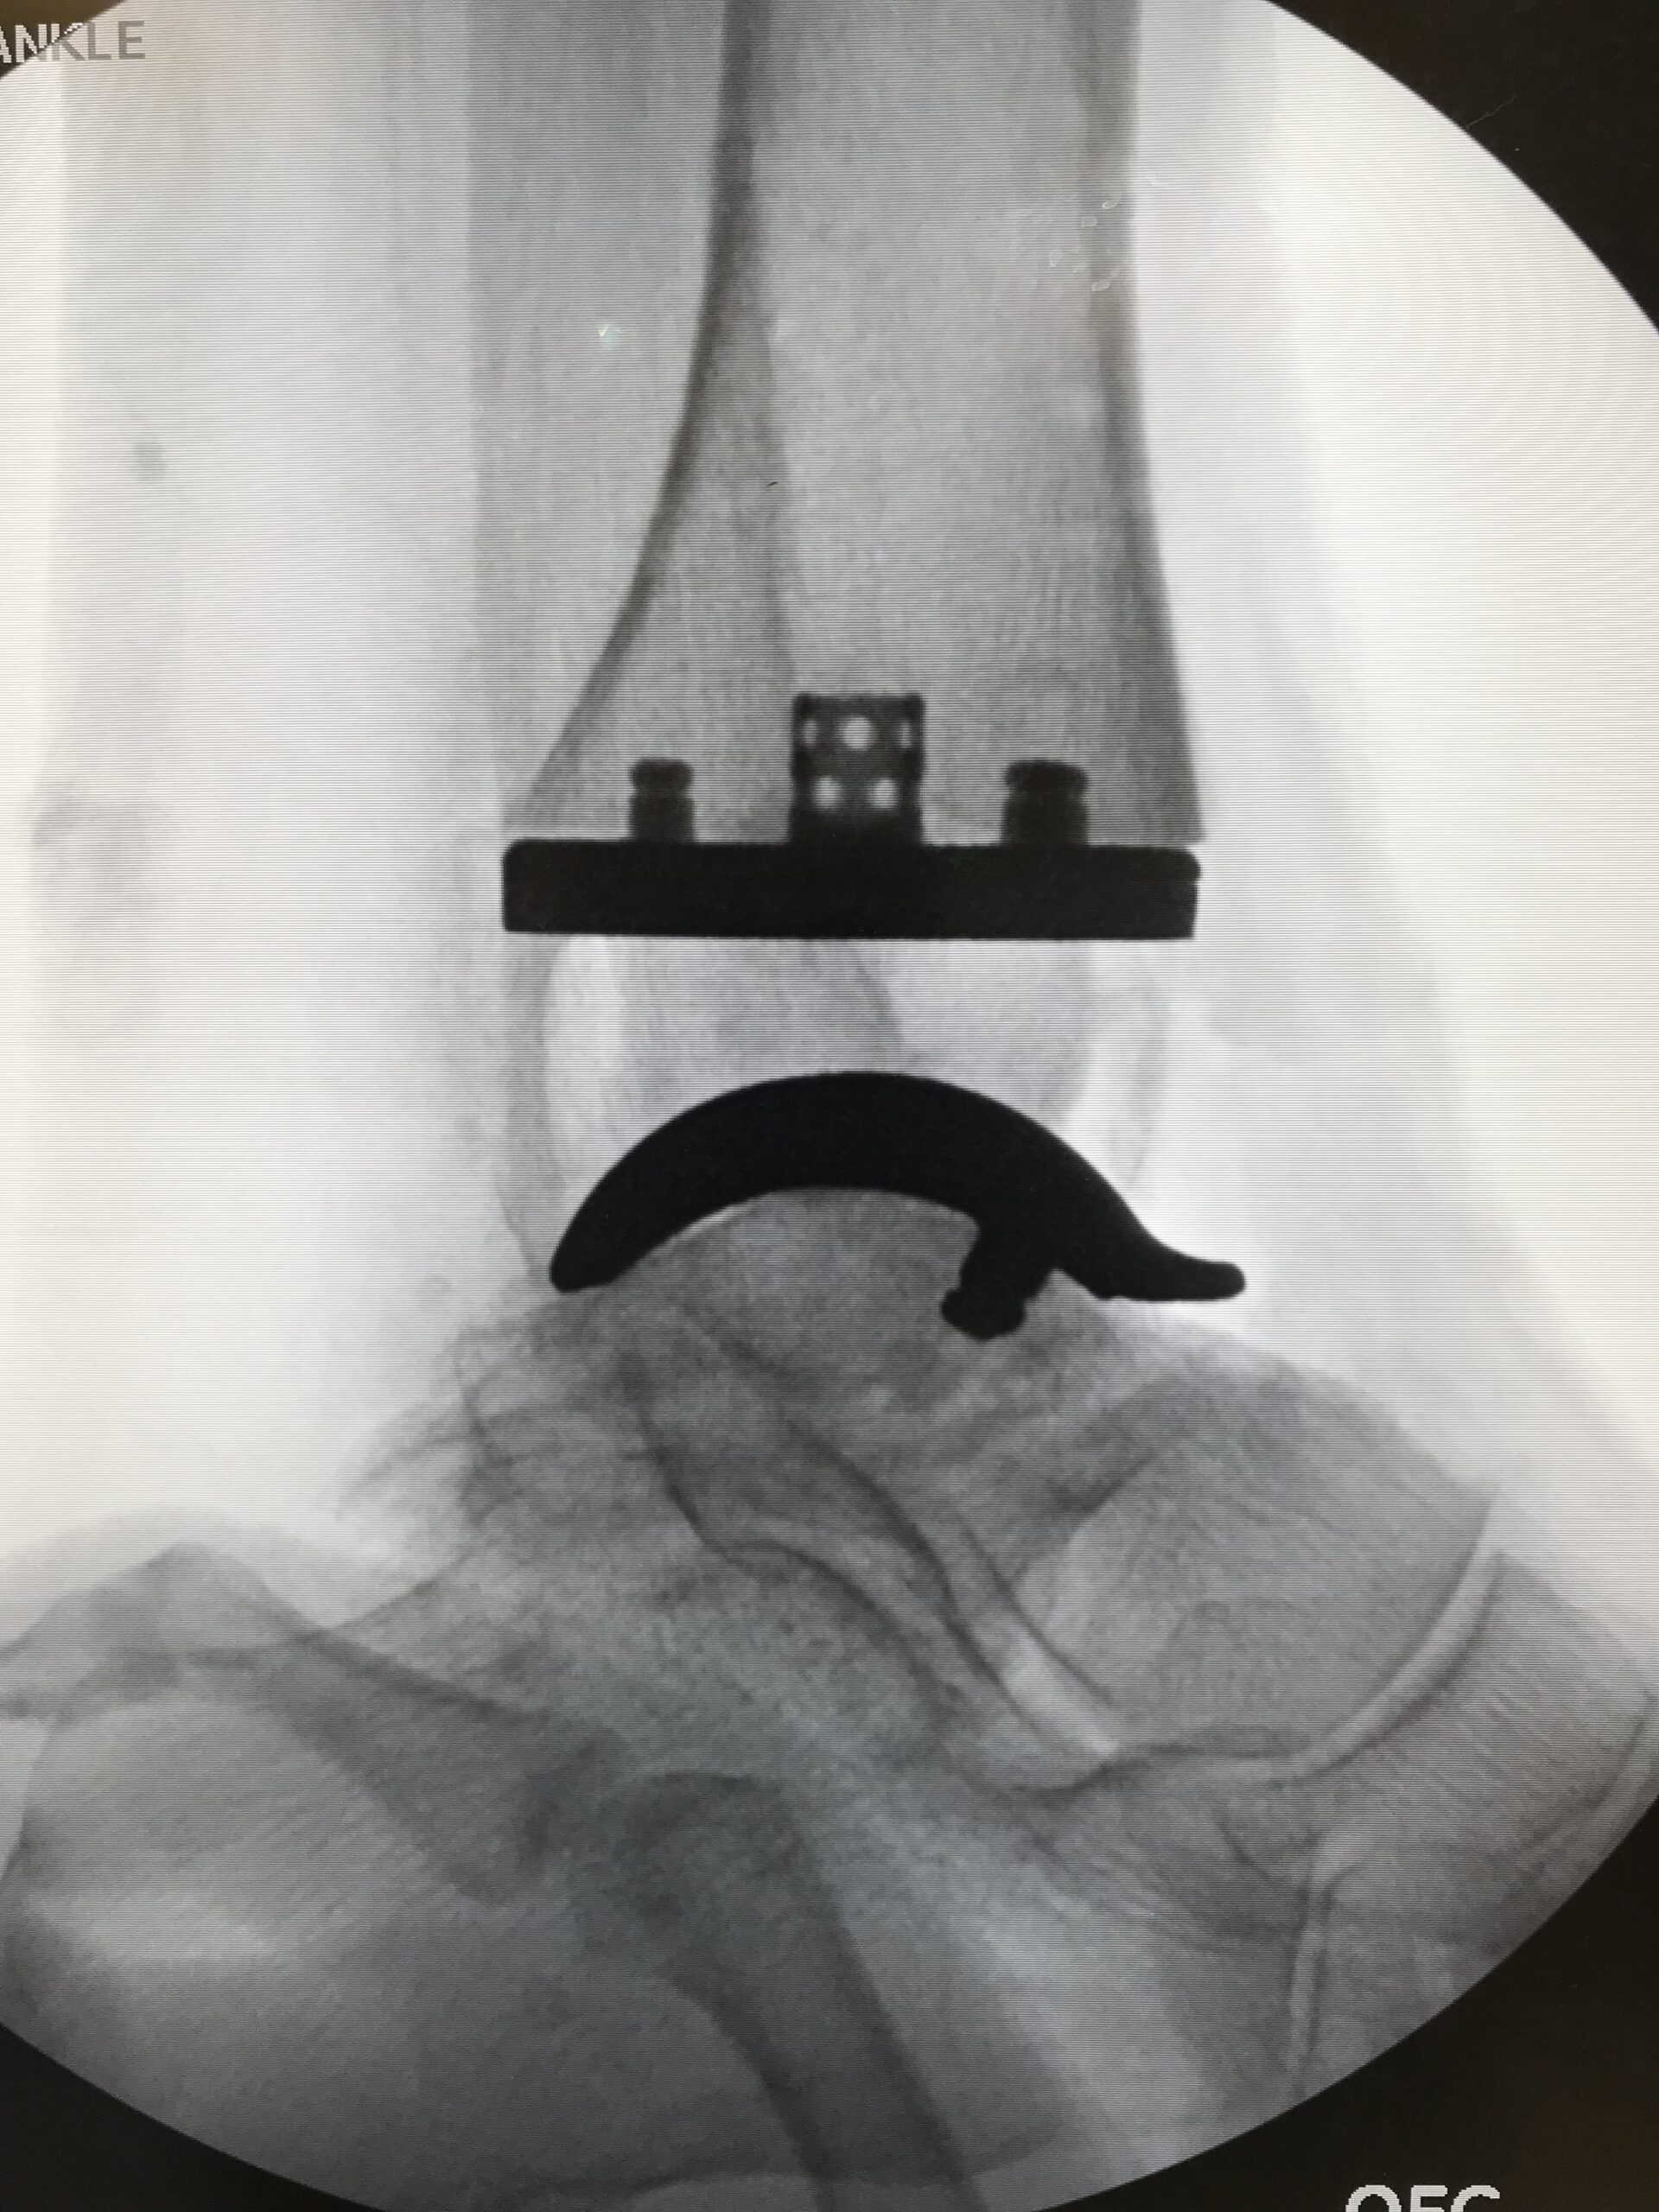 Total Ankle Replacement Arthroplasty x ray image d shasta orthopaedics 051721